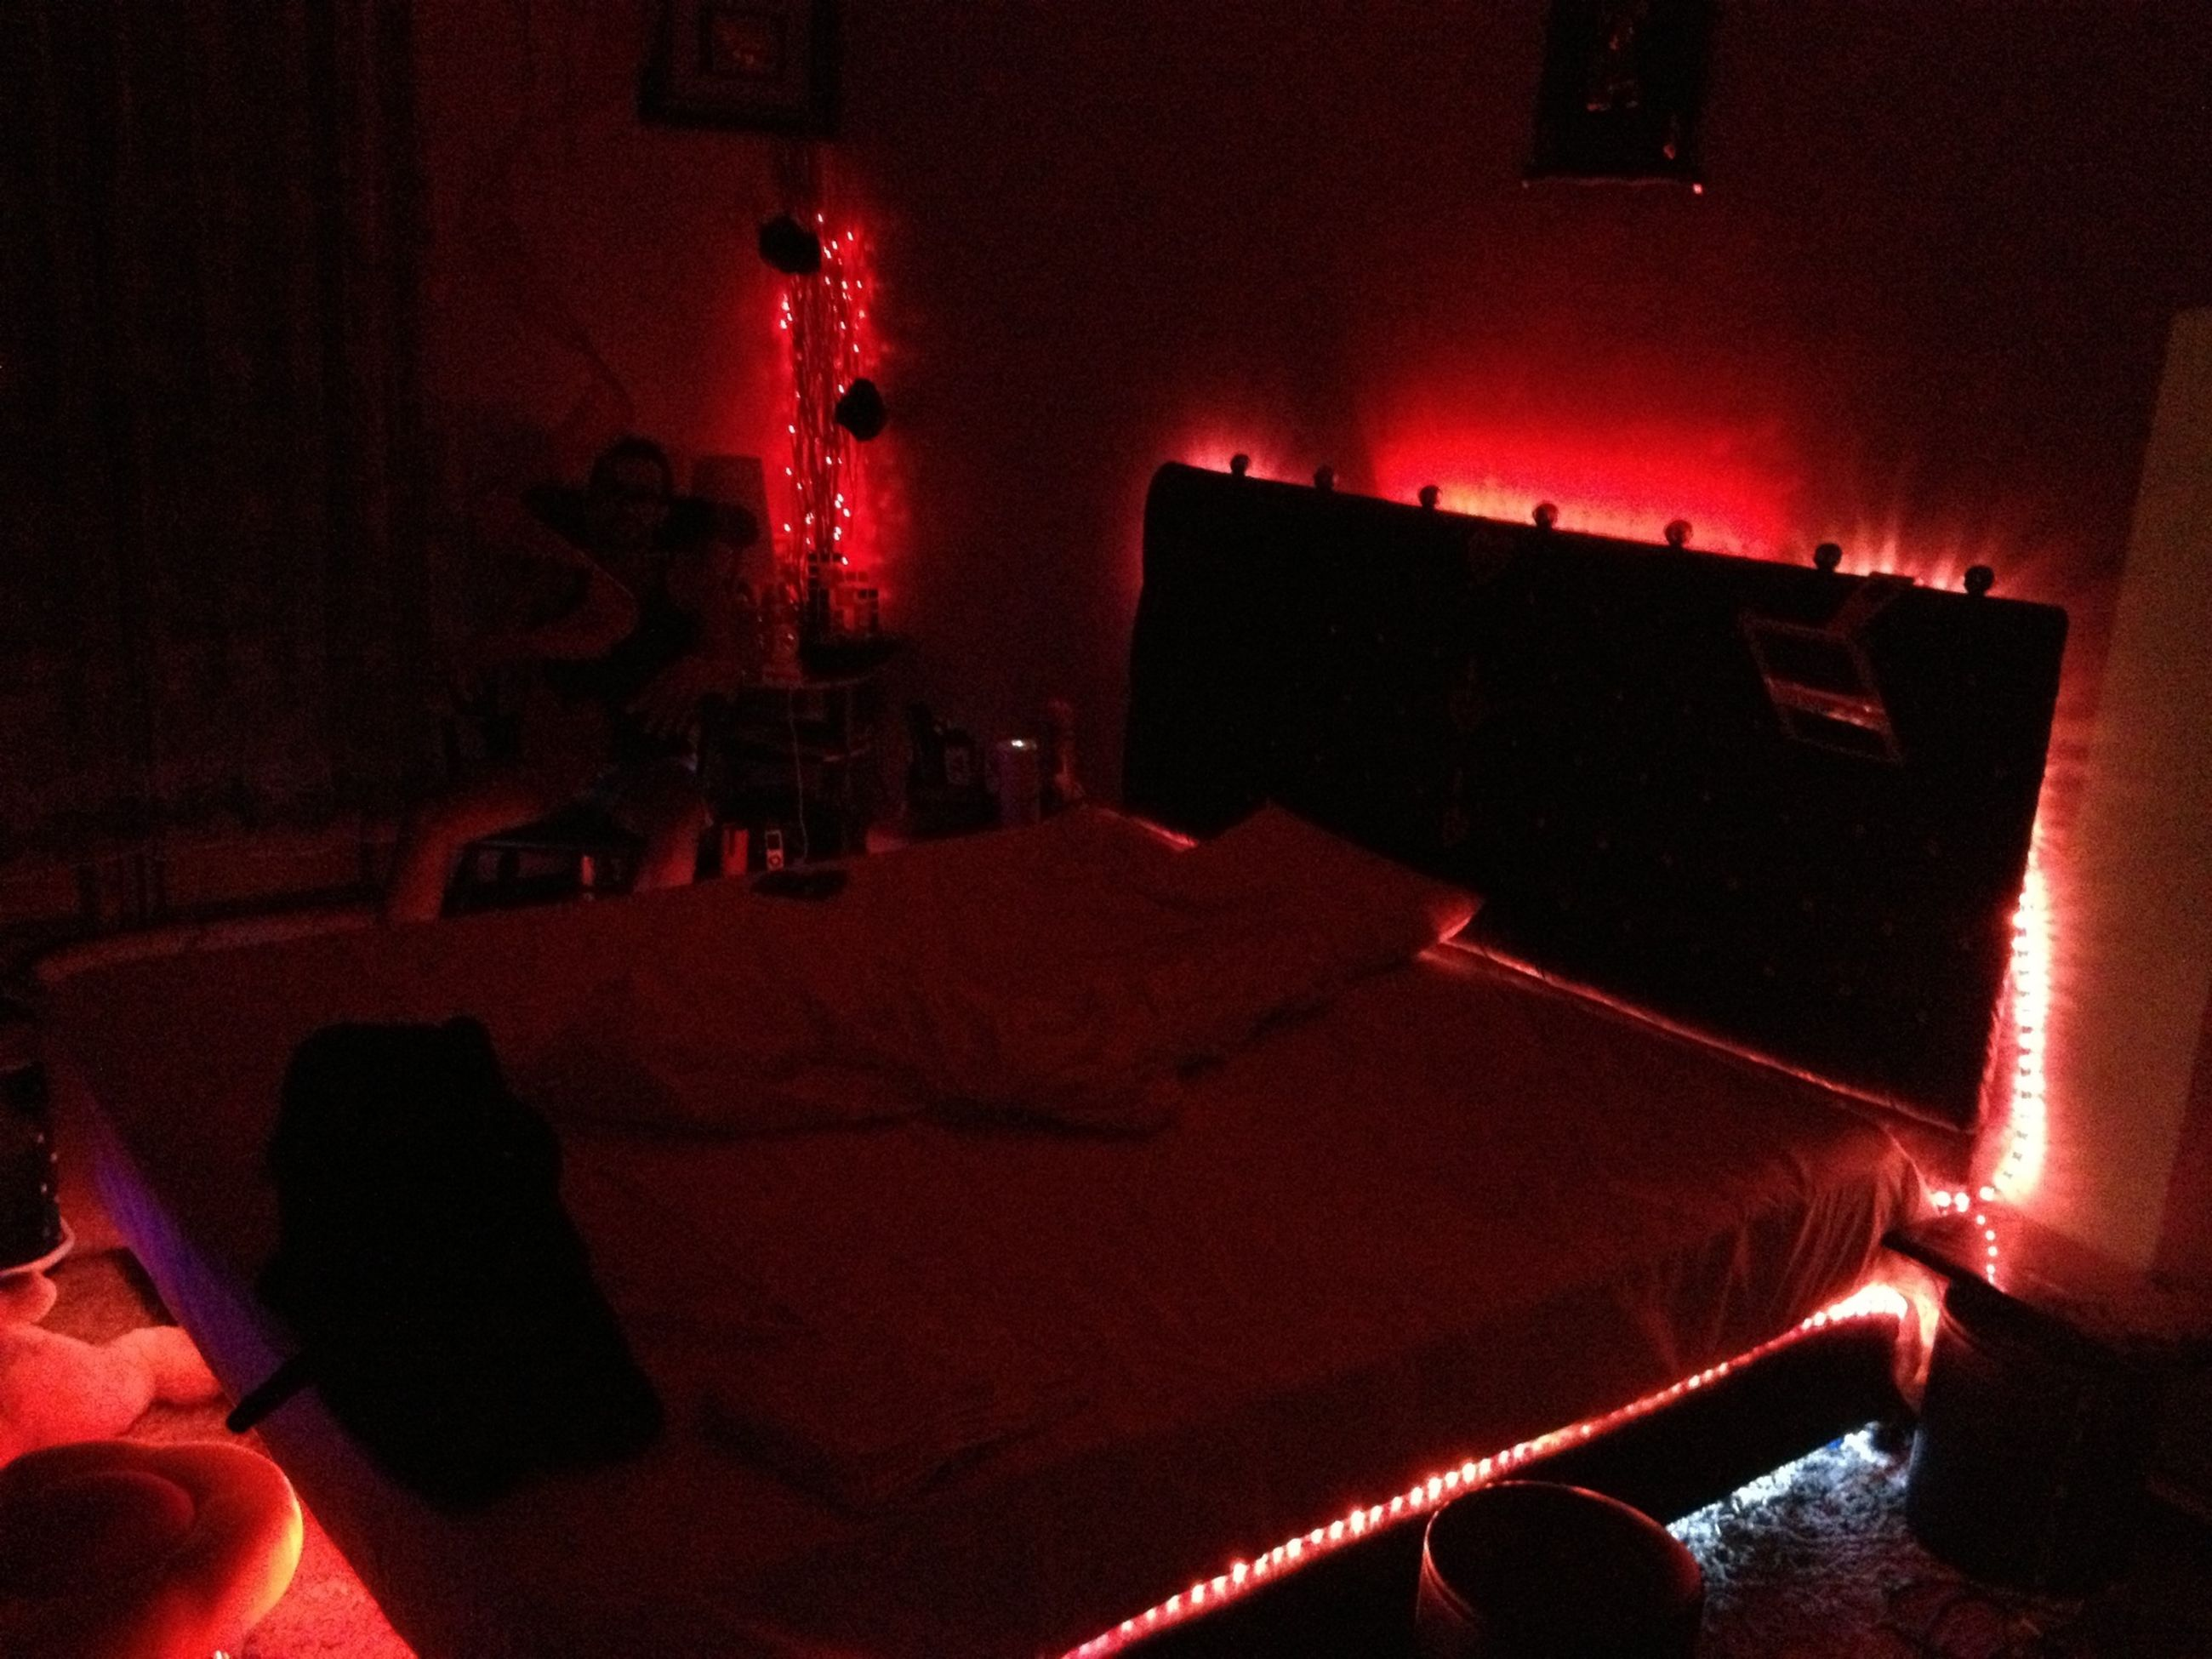 indoors, illuminated, home interior, chair, red, lighting equipment, night, absence, no people, table, house, window, technology, bedroom, domestic room, sofa, interior, room, dark, built structure